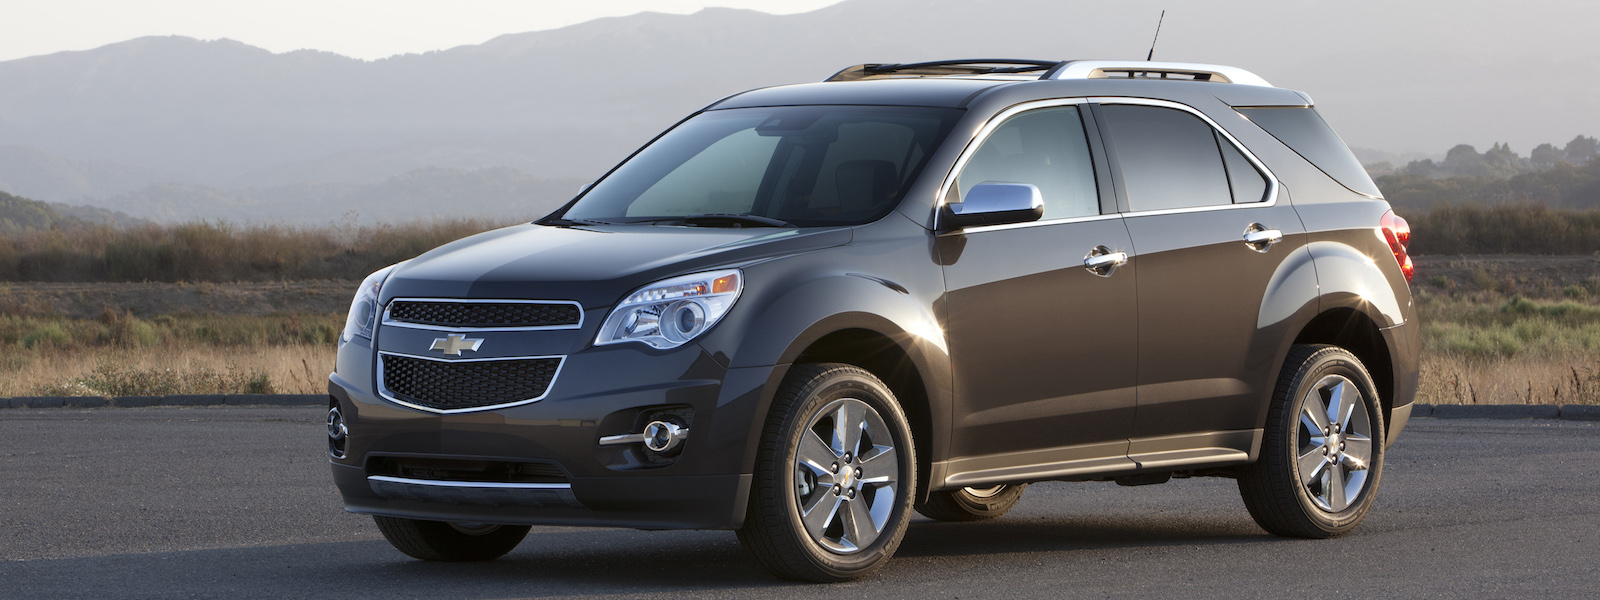 Used Chevy Equinox 2013